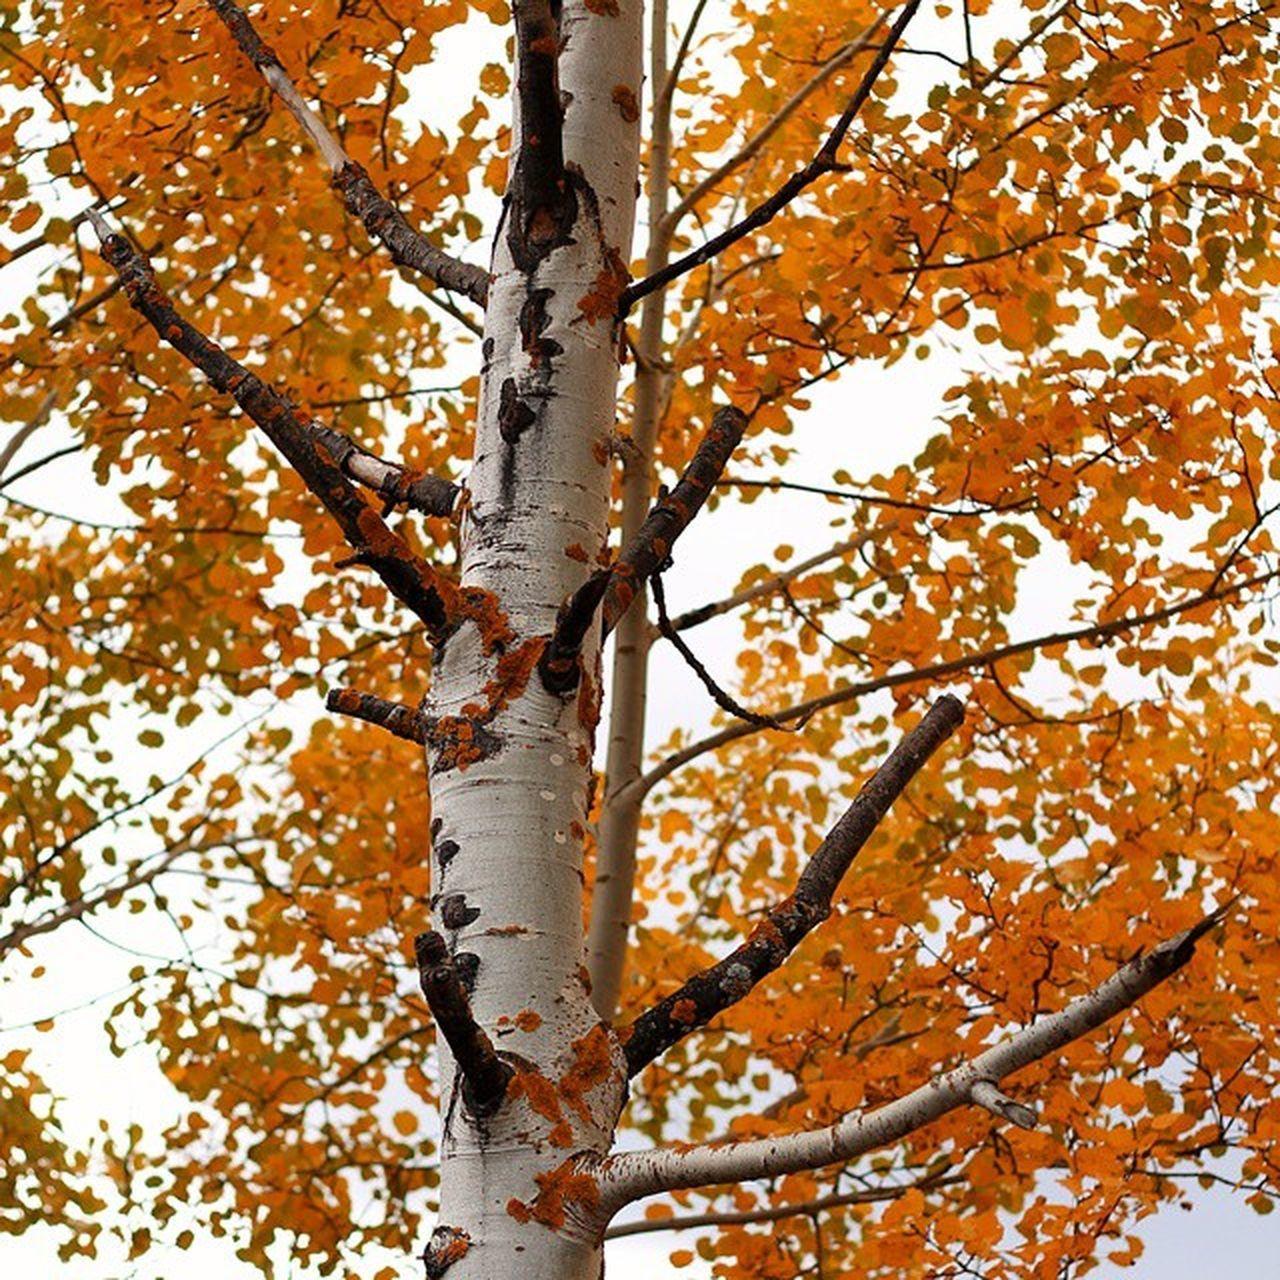 tree, autumn, branch, tree trunk, nature, leaf, beauty in nature, low angle view, day, change, no people, outdoors, growth, tranquility, forest, scenics, close-up, sky